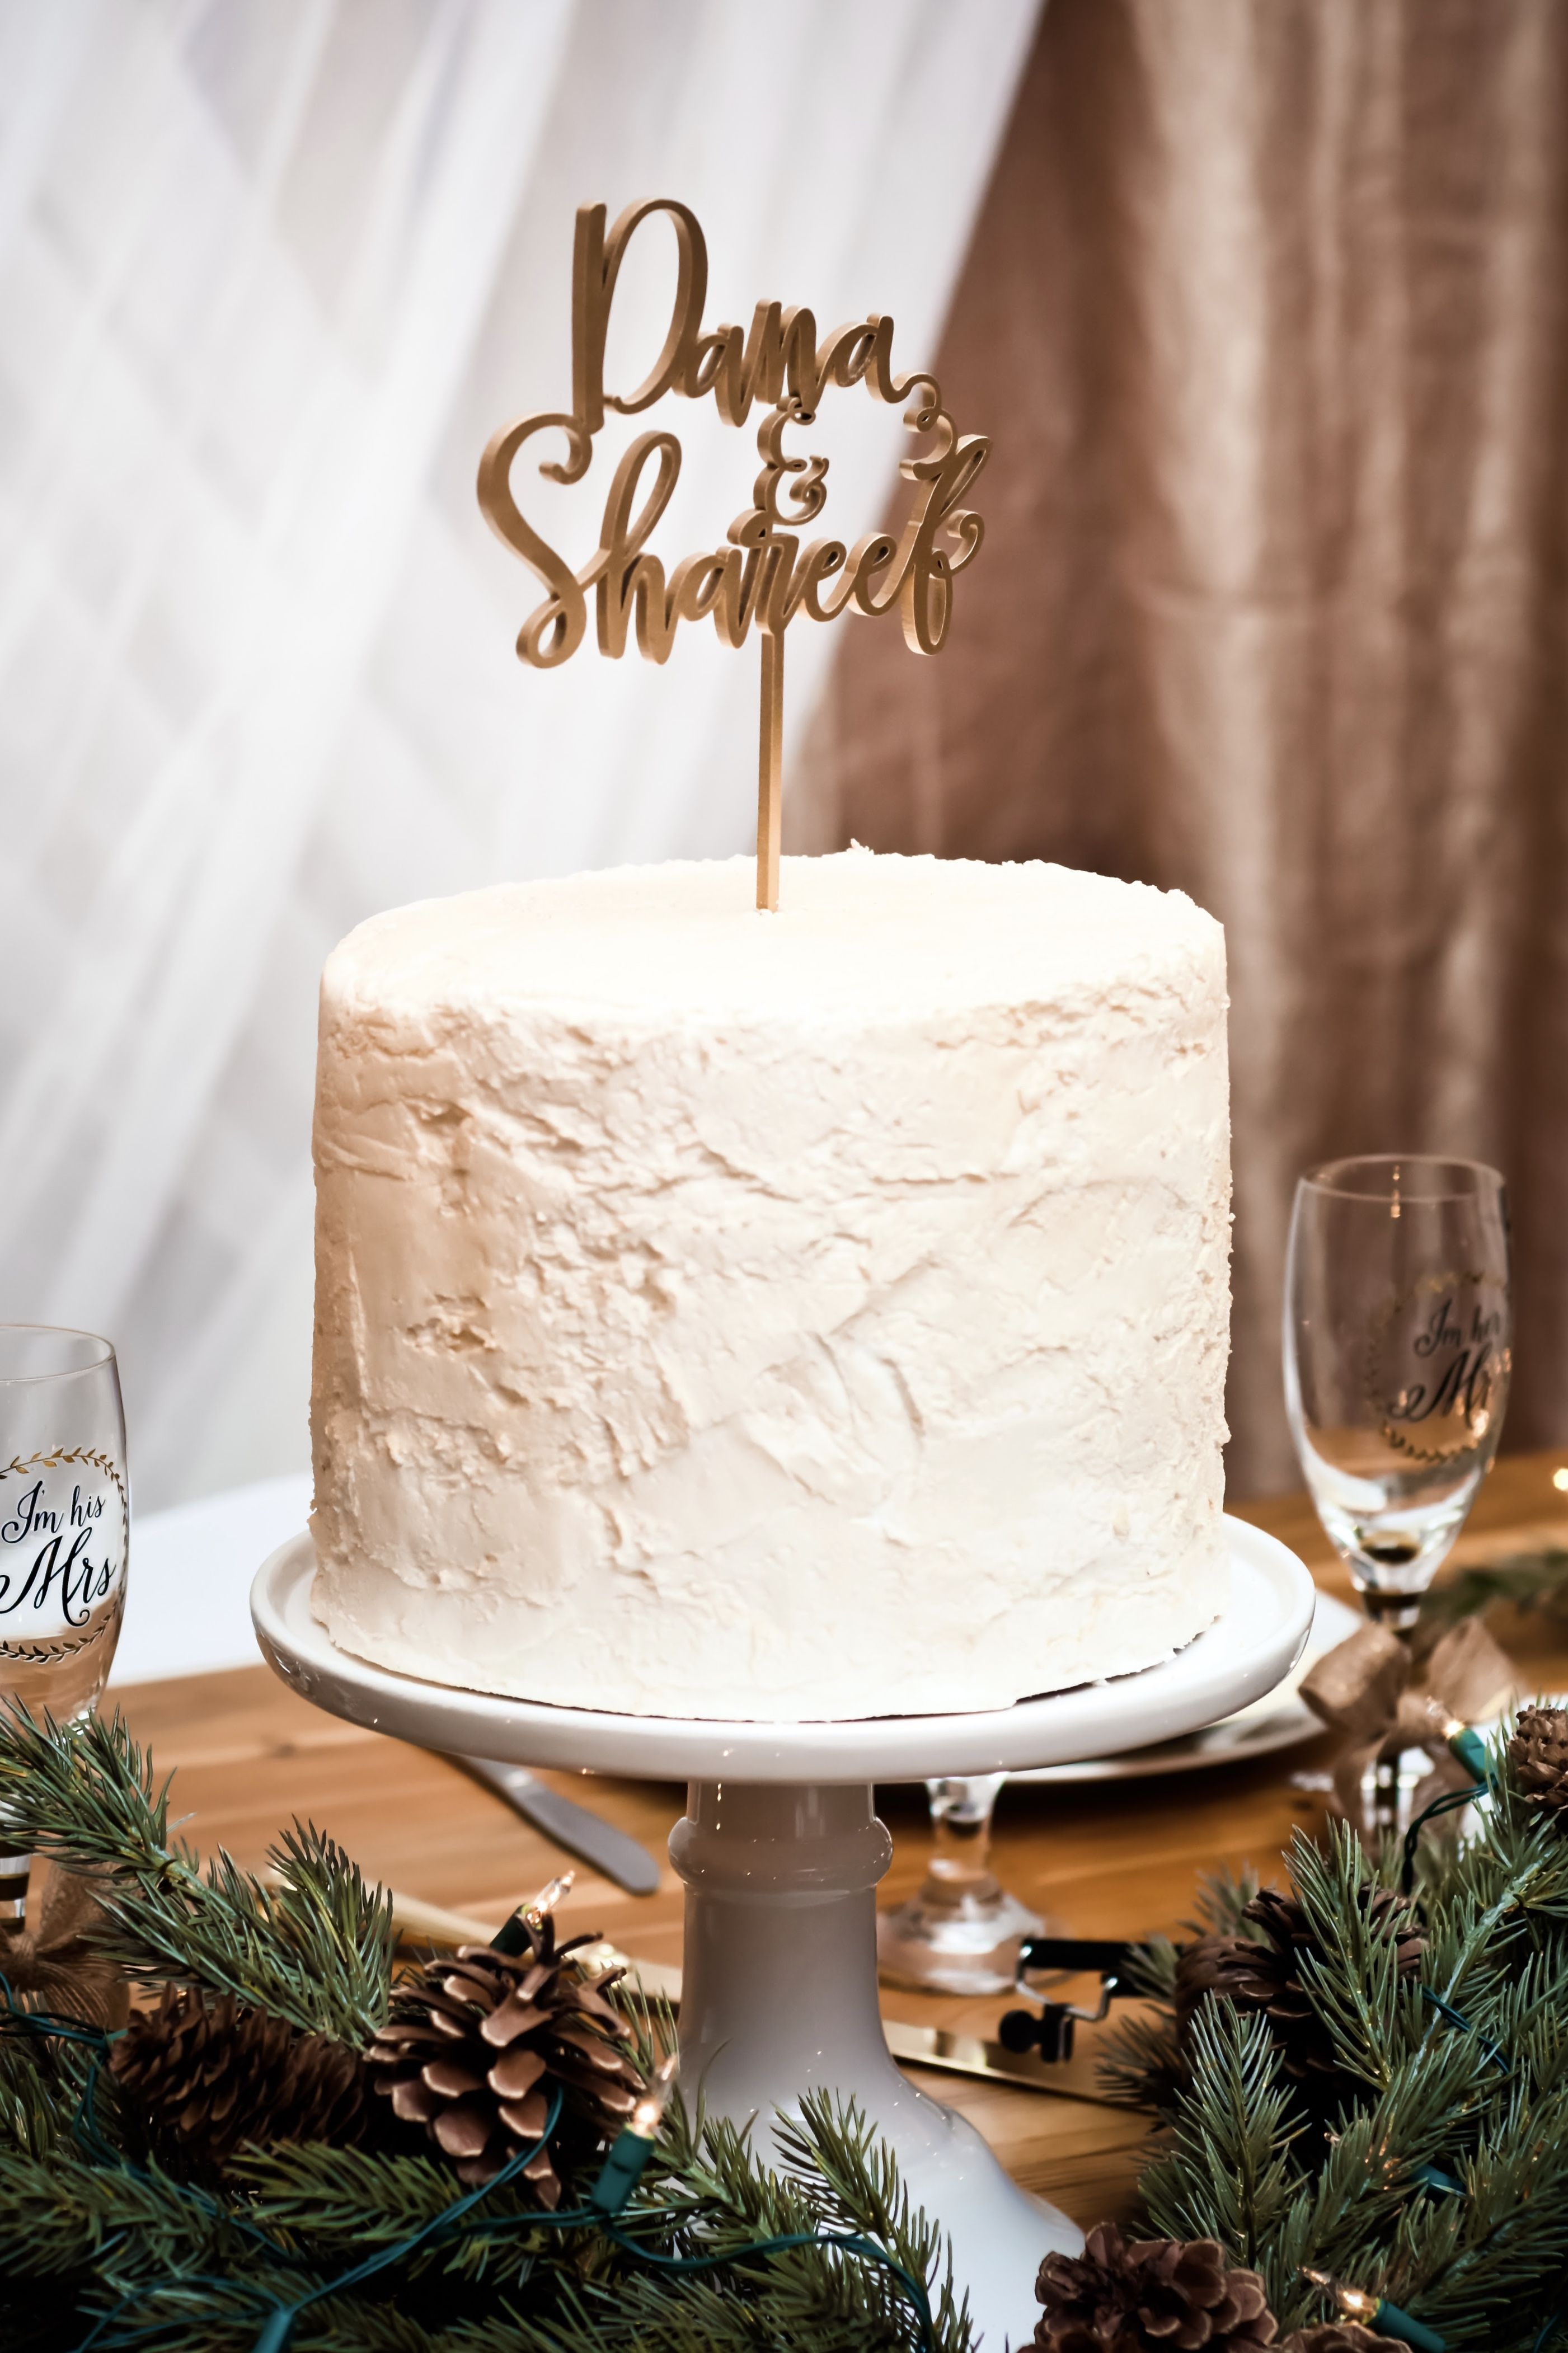 A textured, white wedding cake is simple yet very elegant